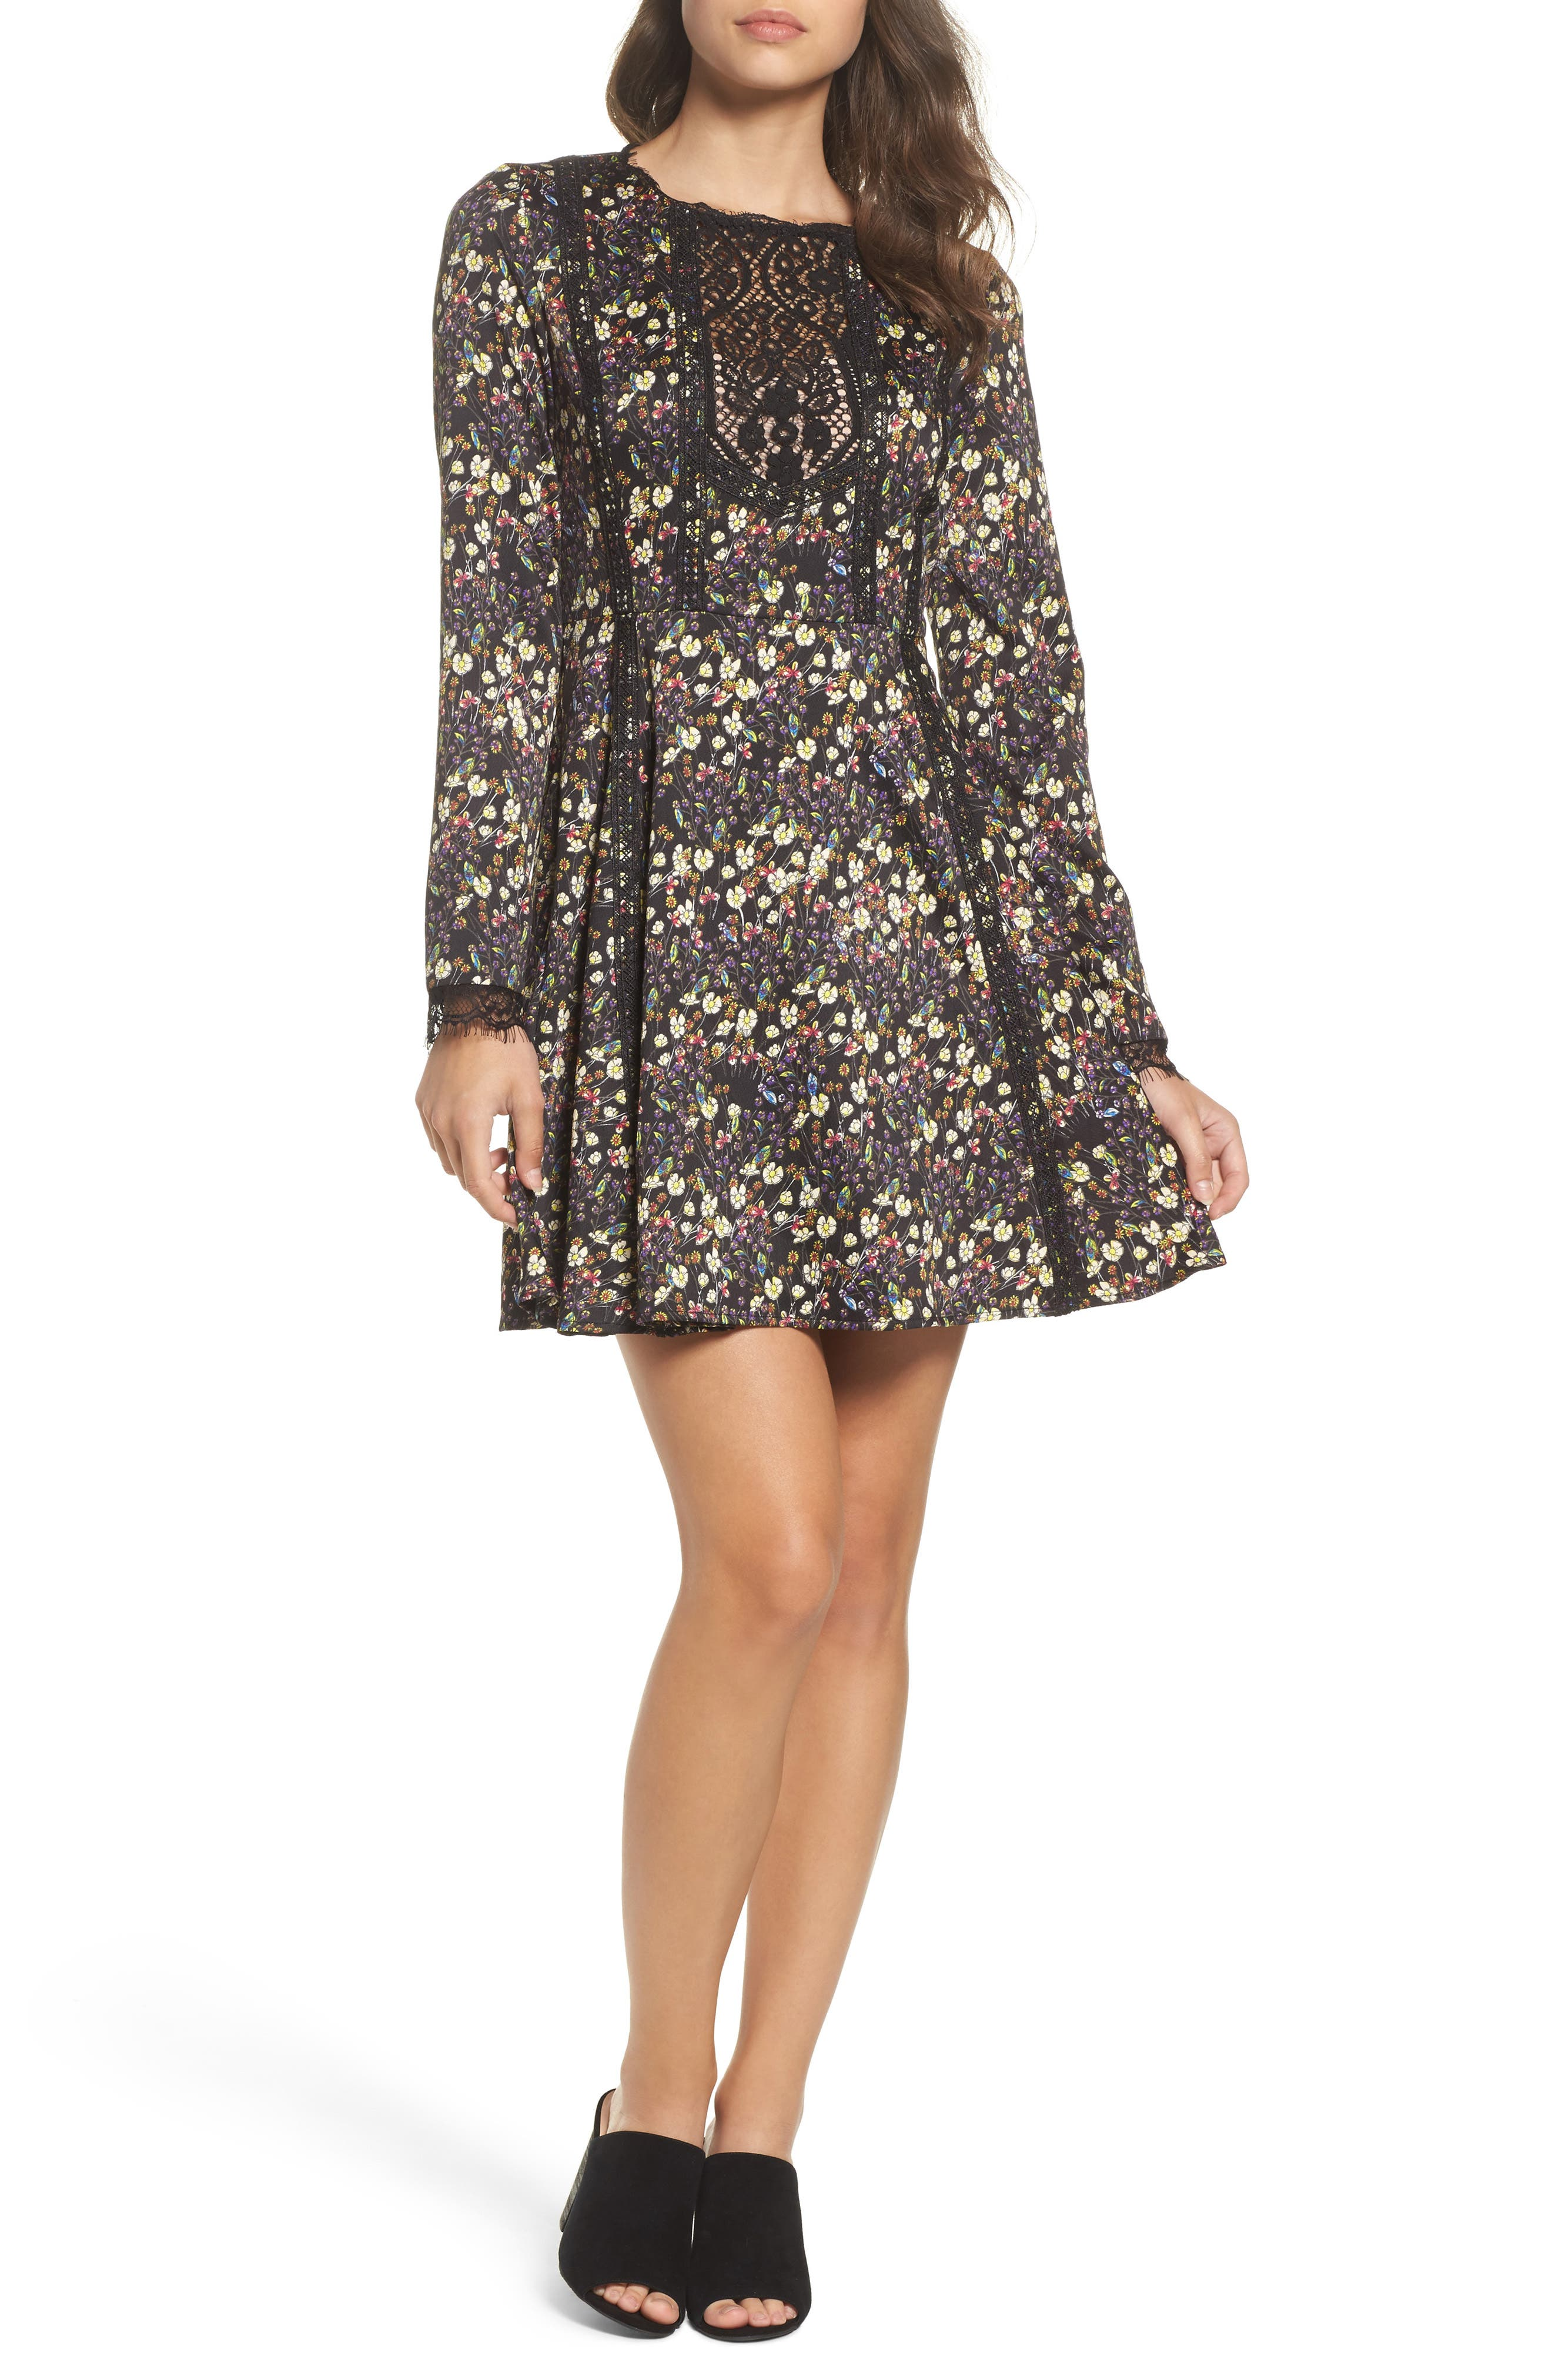 French Connection Hallie Fit & Flare Dress, Black